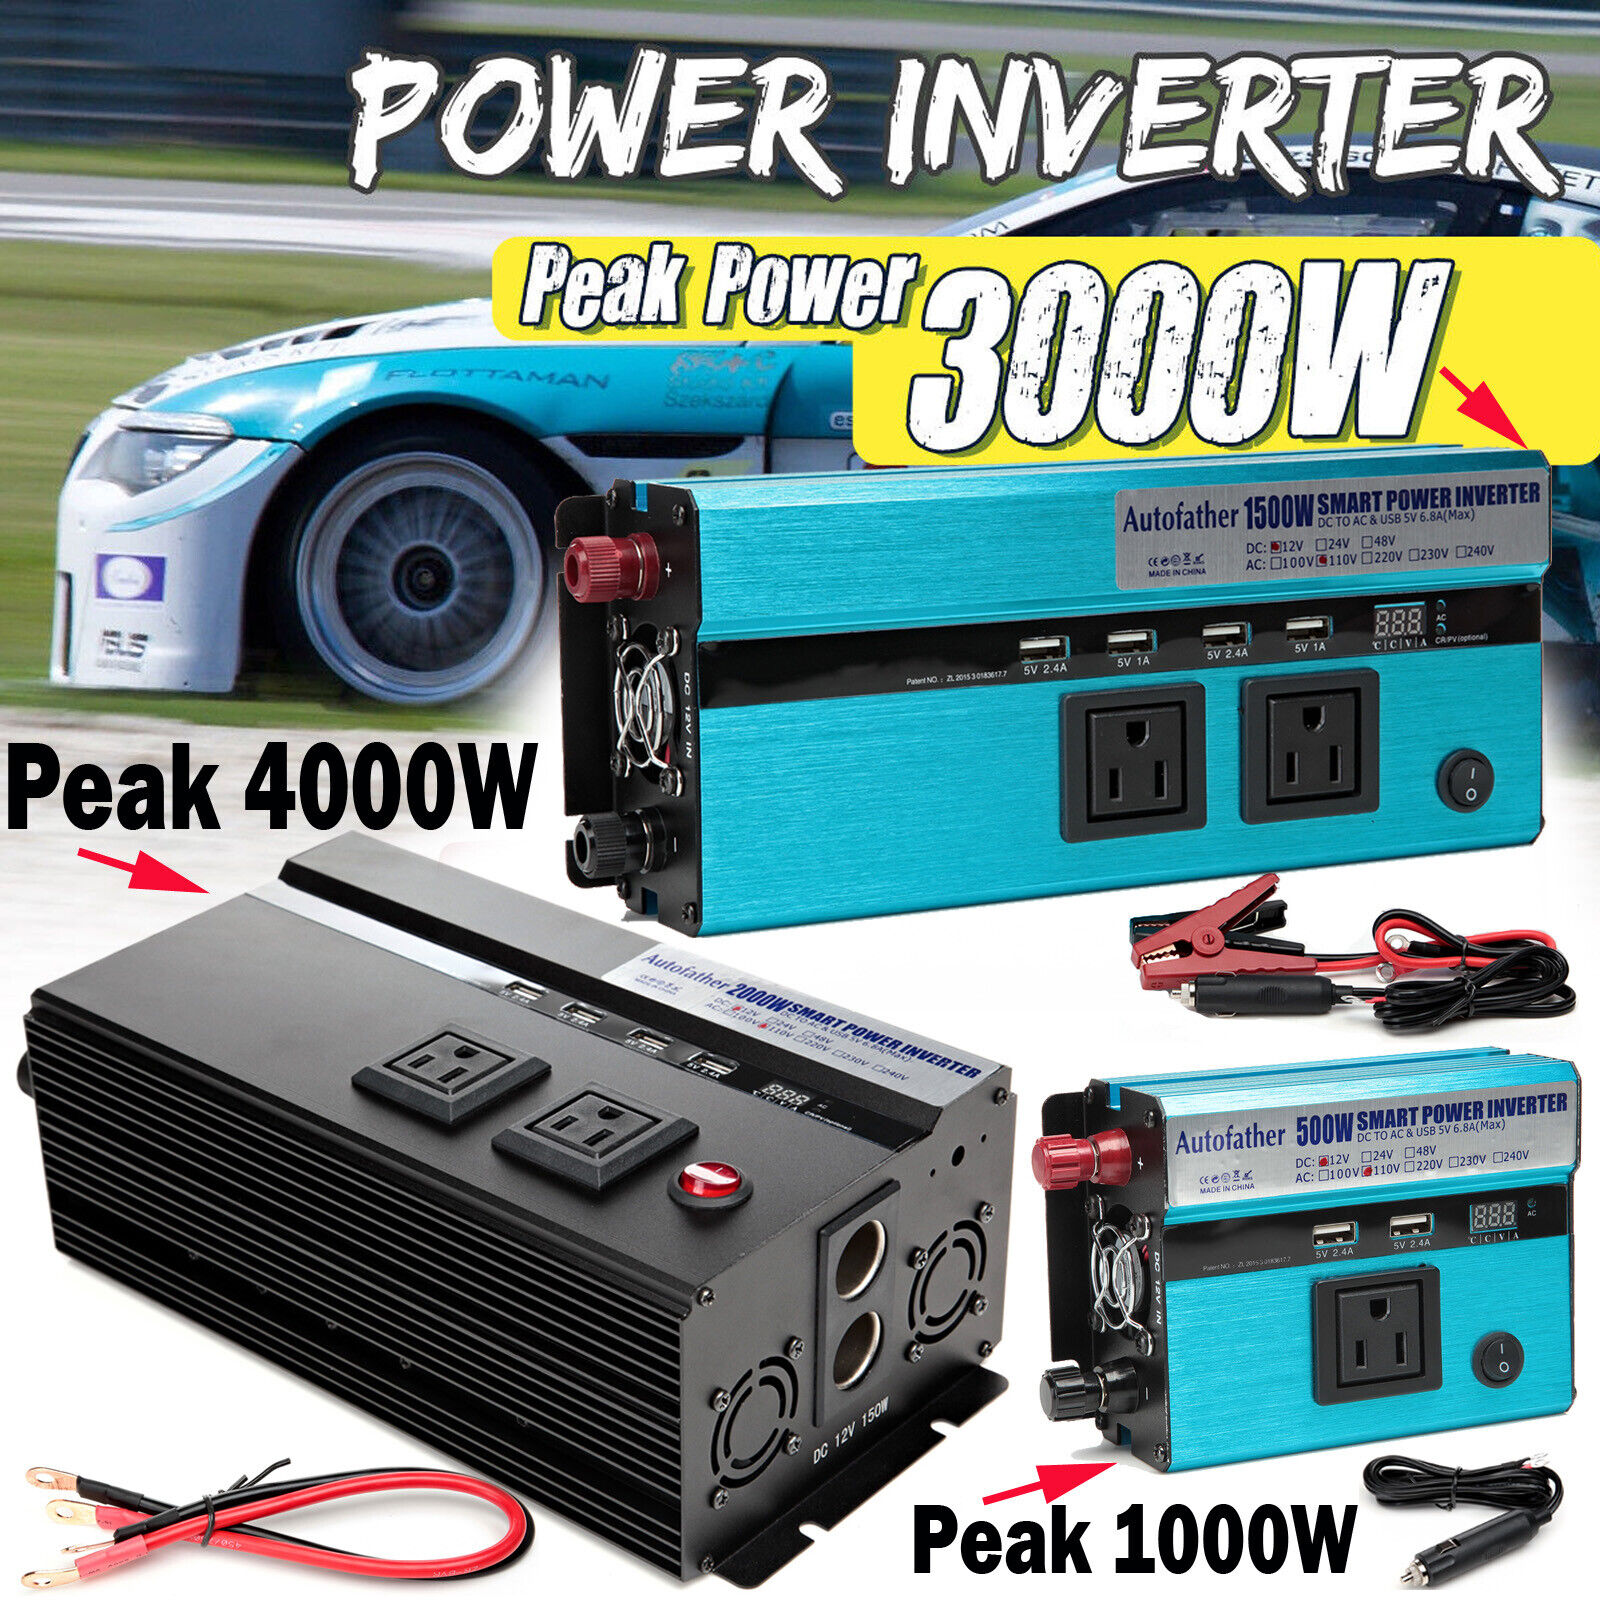 Autofather Car Power Inverter Charger Converter DC 12V to AC 110V for Electronic